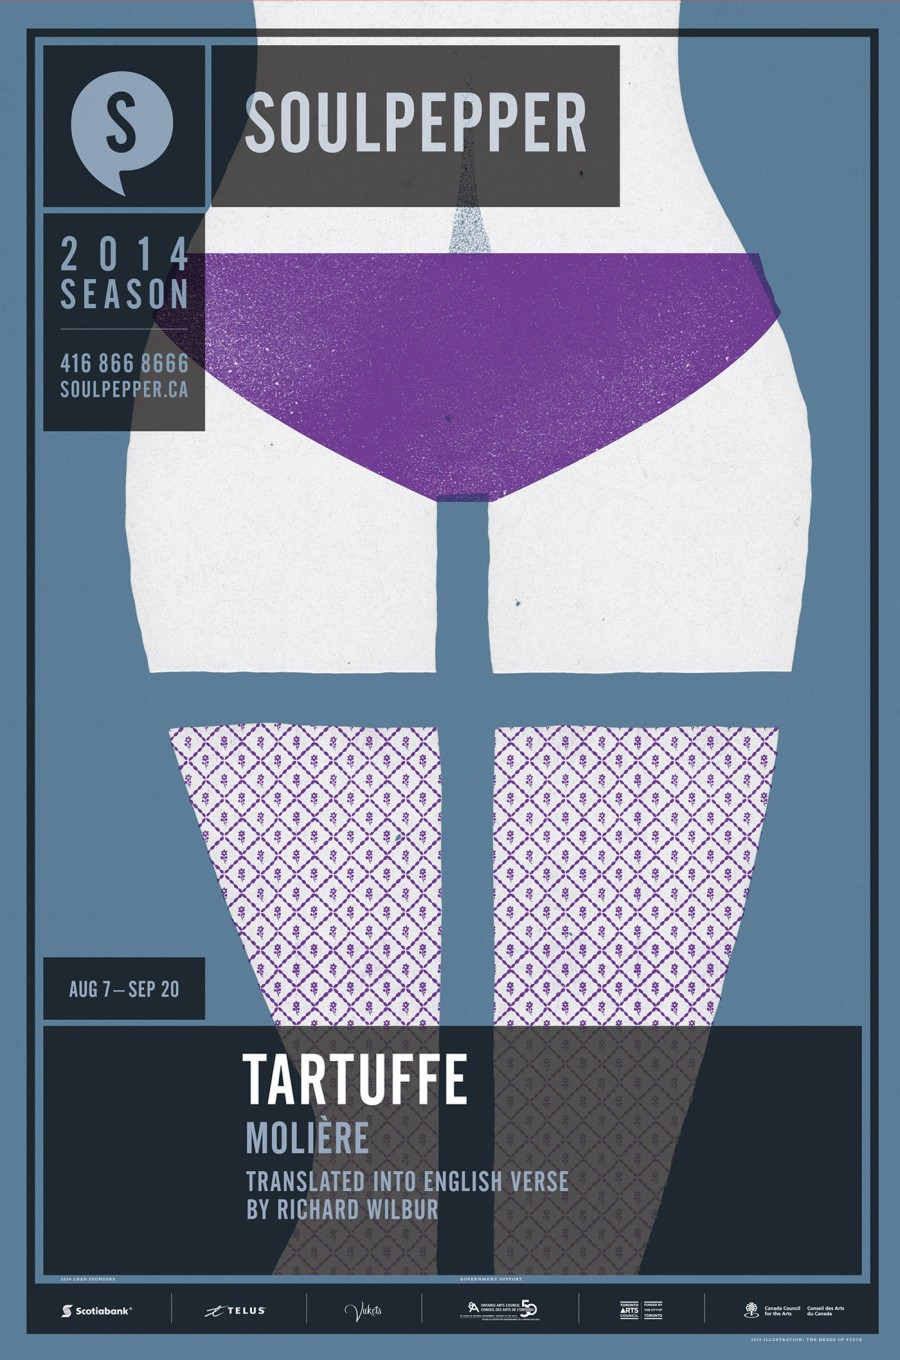 Tartuffe - Soulpepper Theatre - 2014 Season Poster Series - The Heads of State